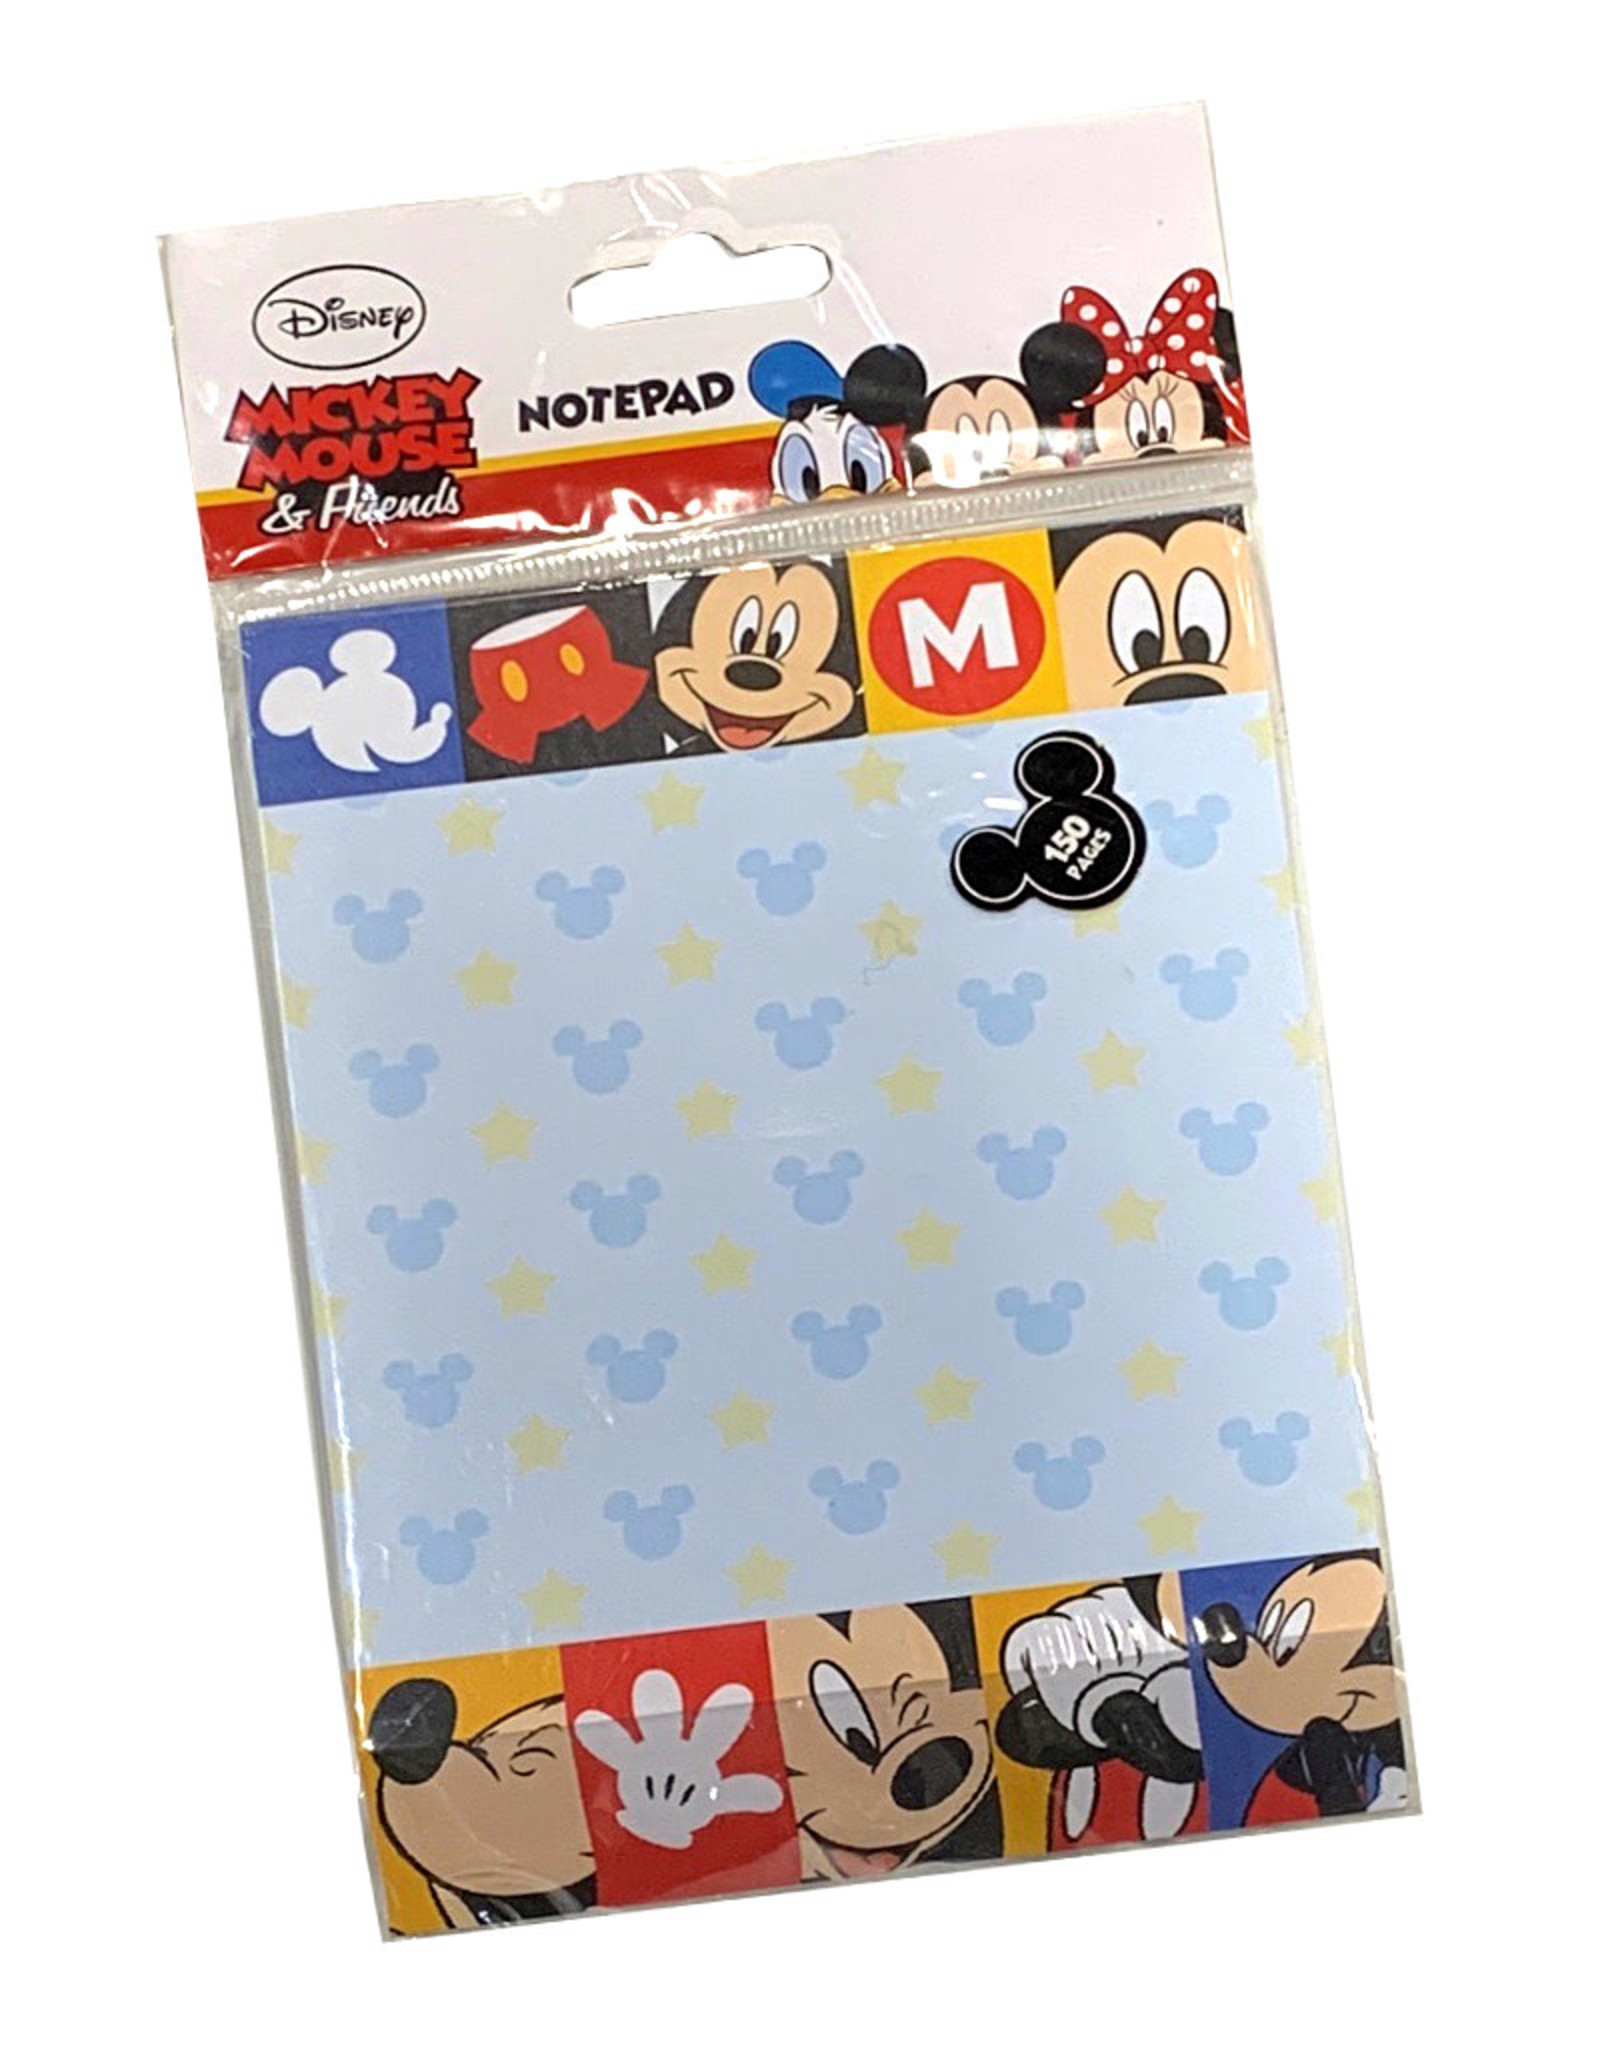 Disney Disney ( Notepad ) Mickey Mouse 150 Pages